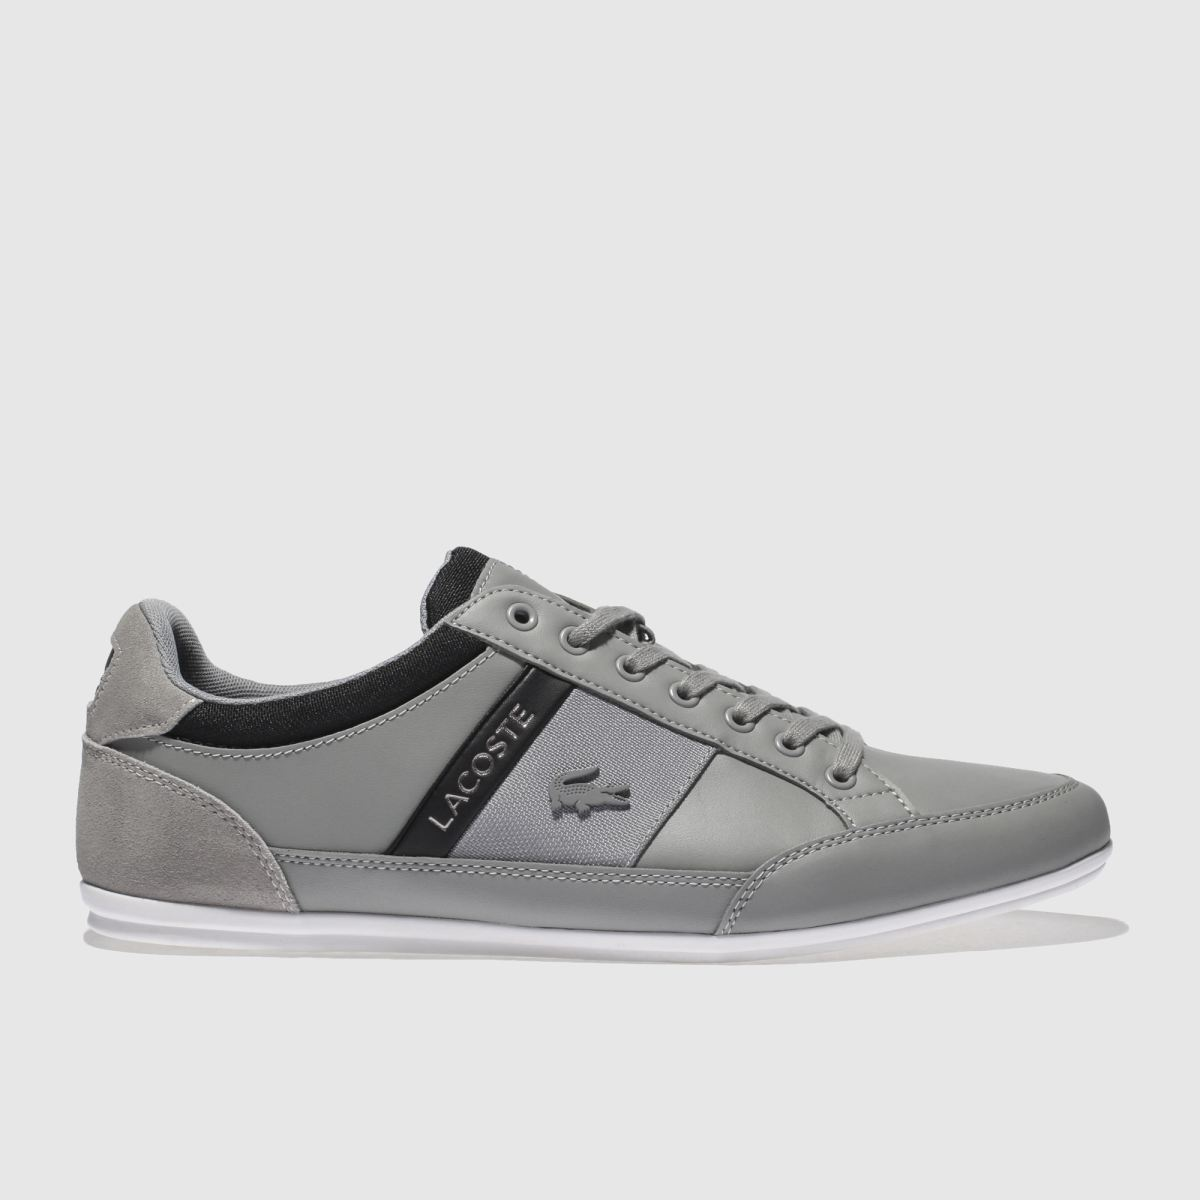 Lacoste Grey & Black Chaymon Trainers